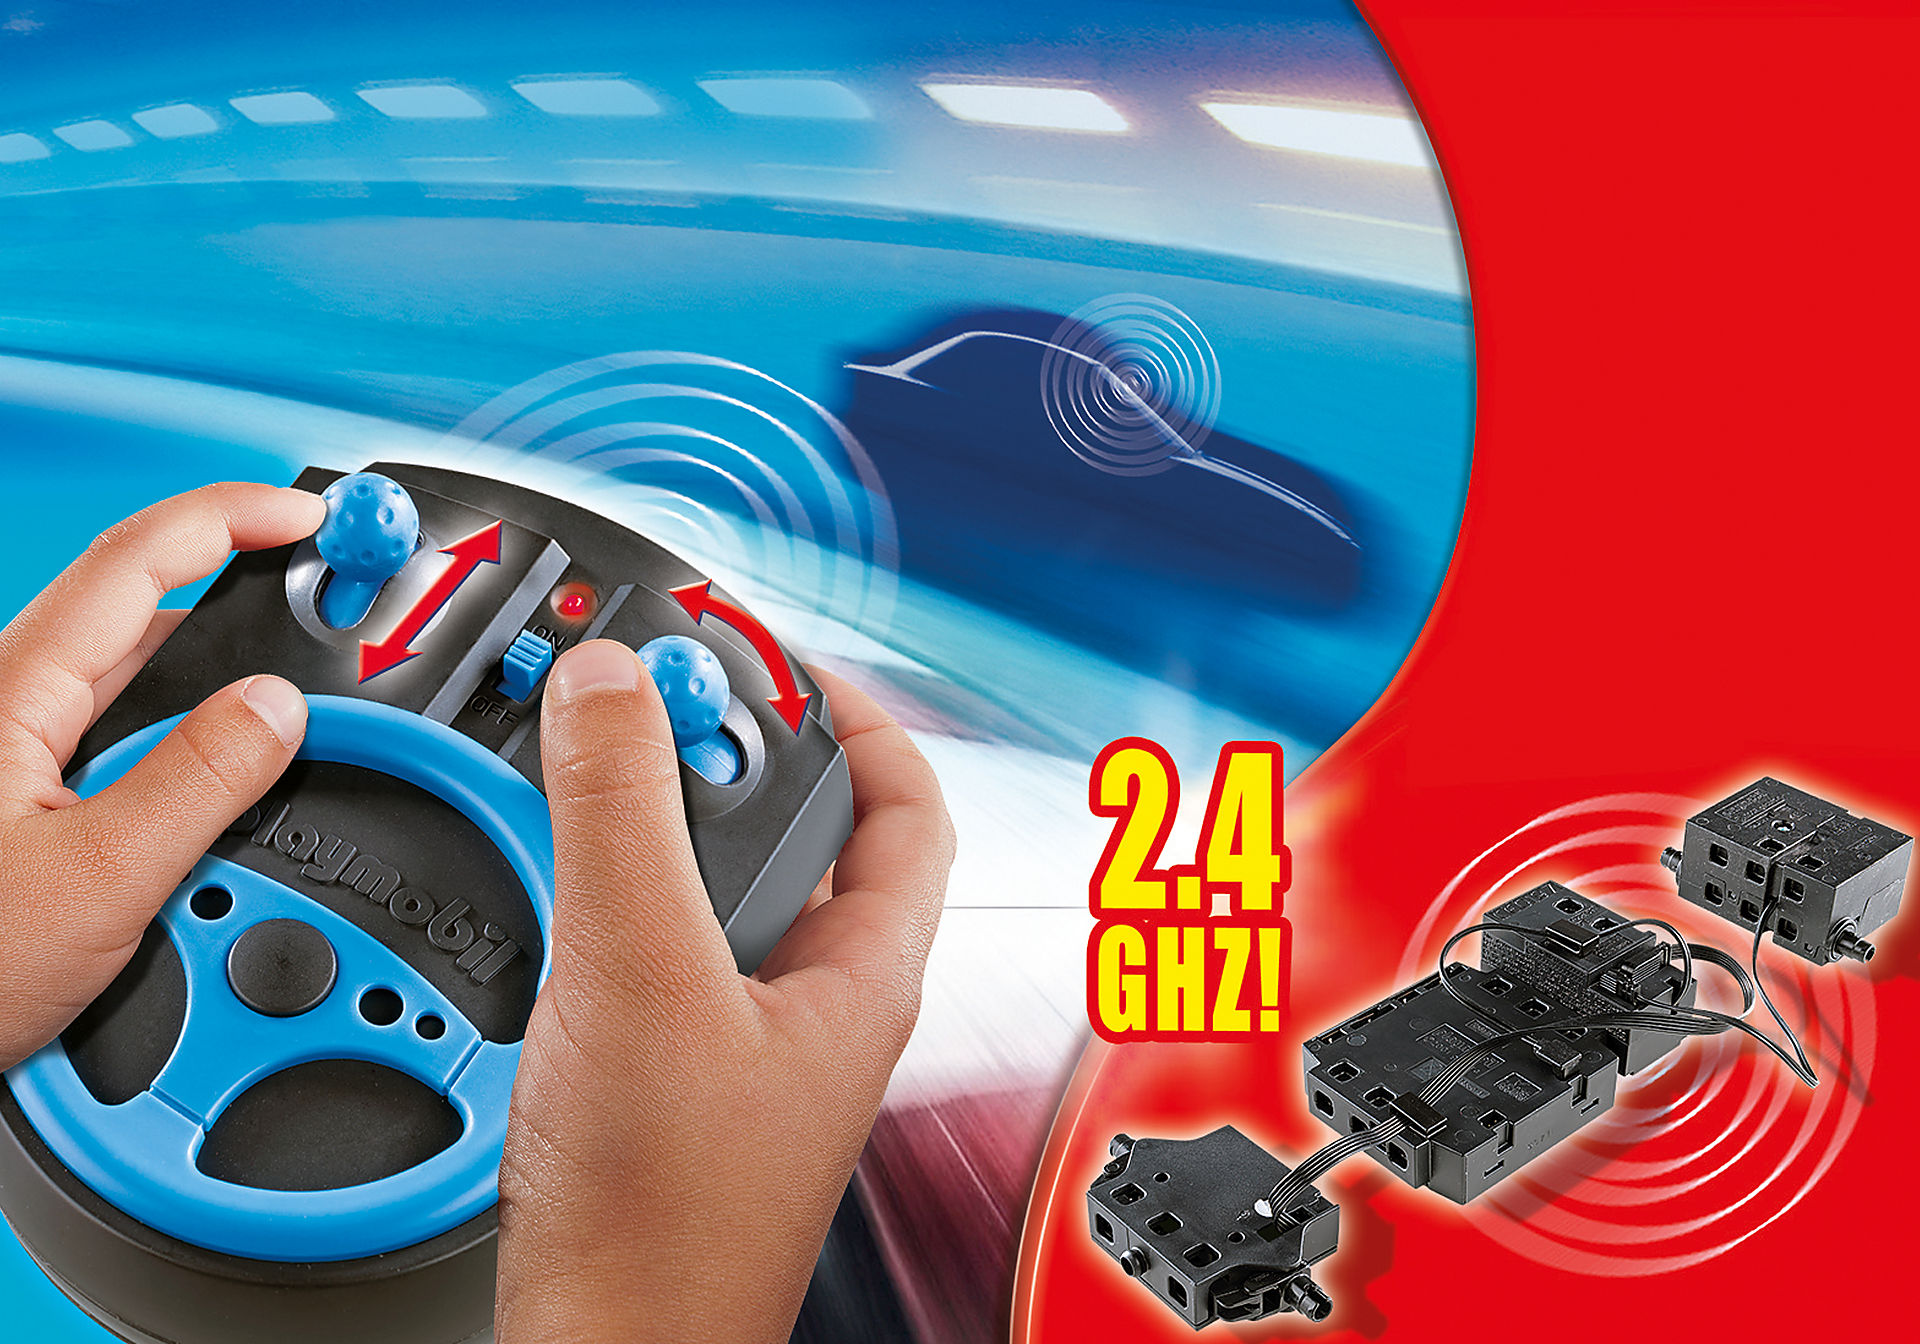 6914 Remote Control Set 2.4GHz zoom image1